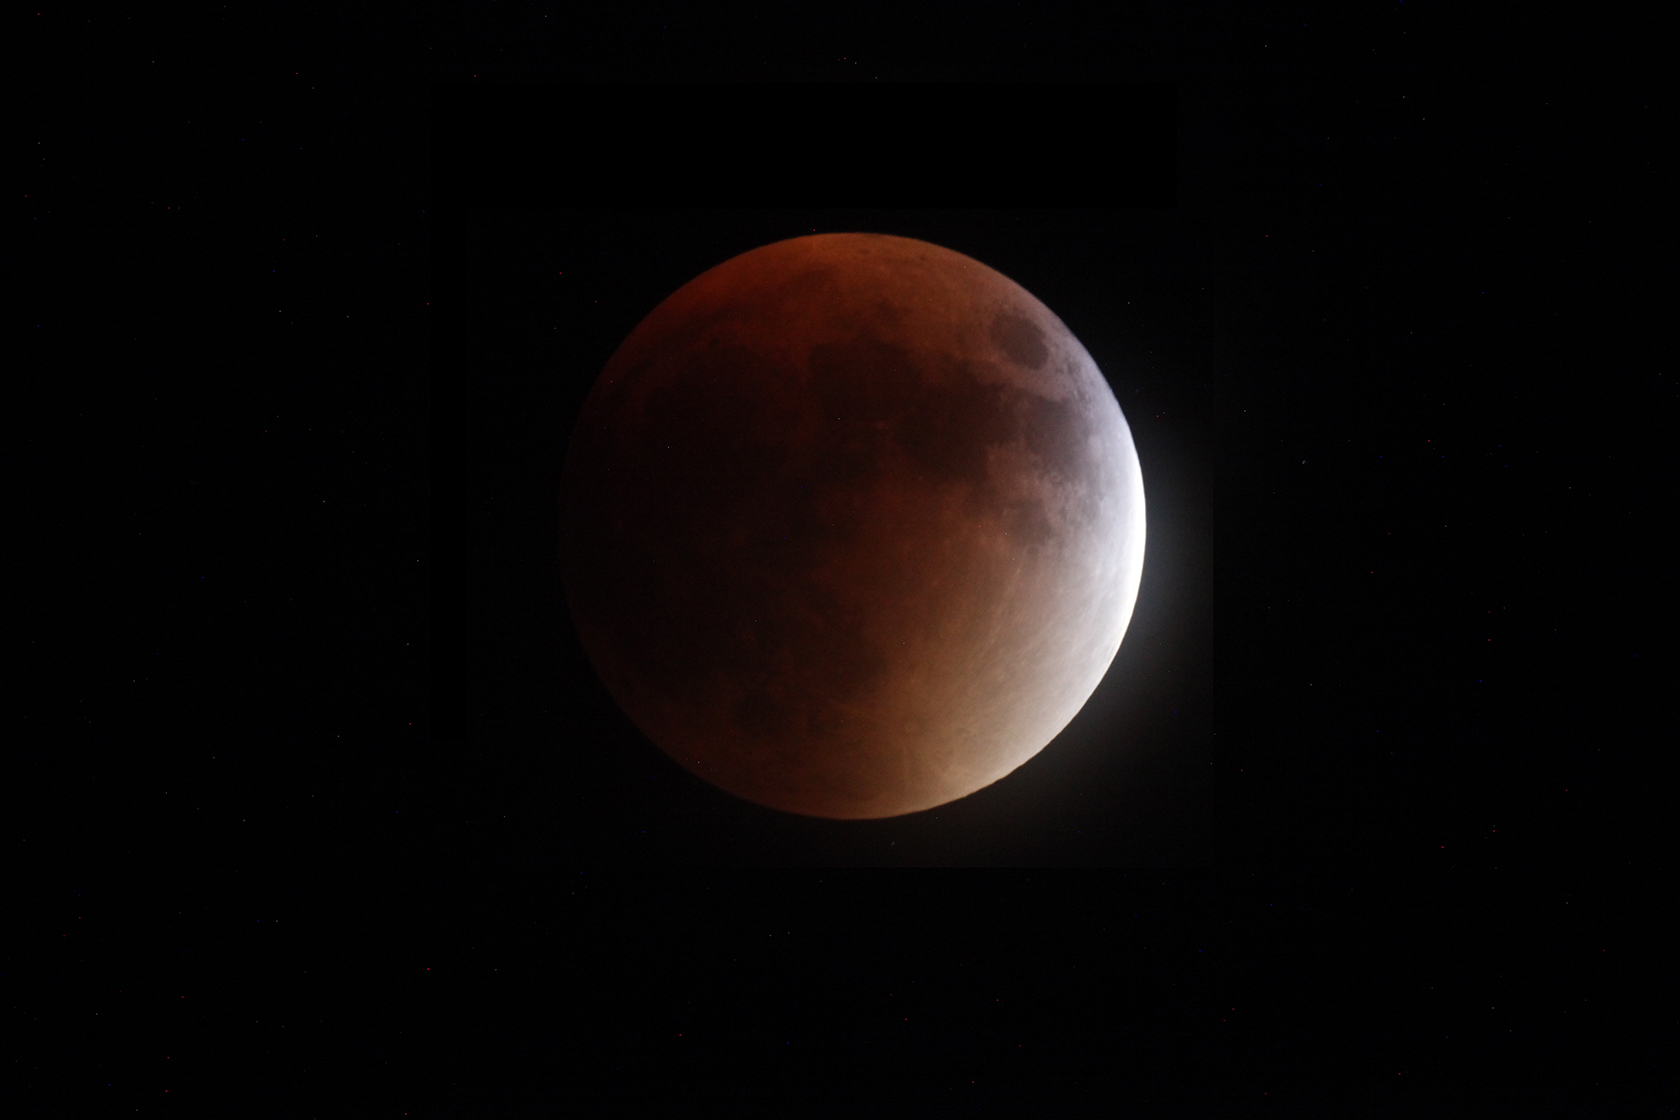 Blood Moon - photo taken from the backyard. 800mm telescope and DigiSLR